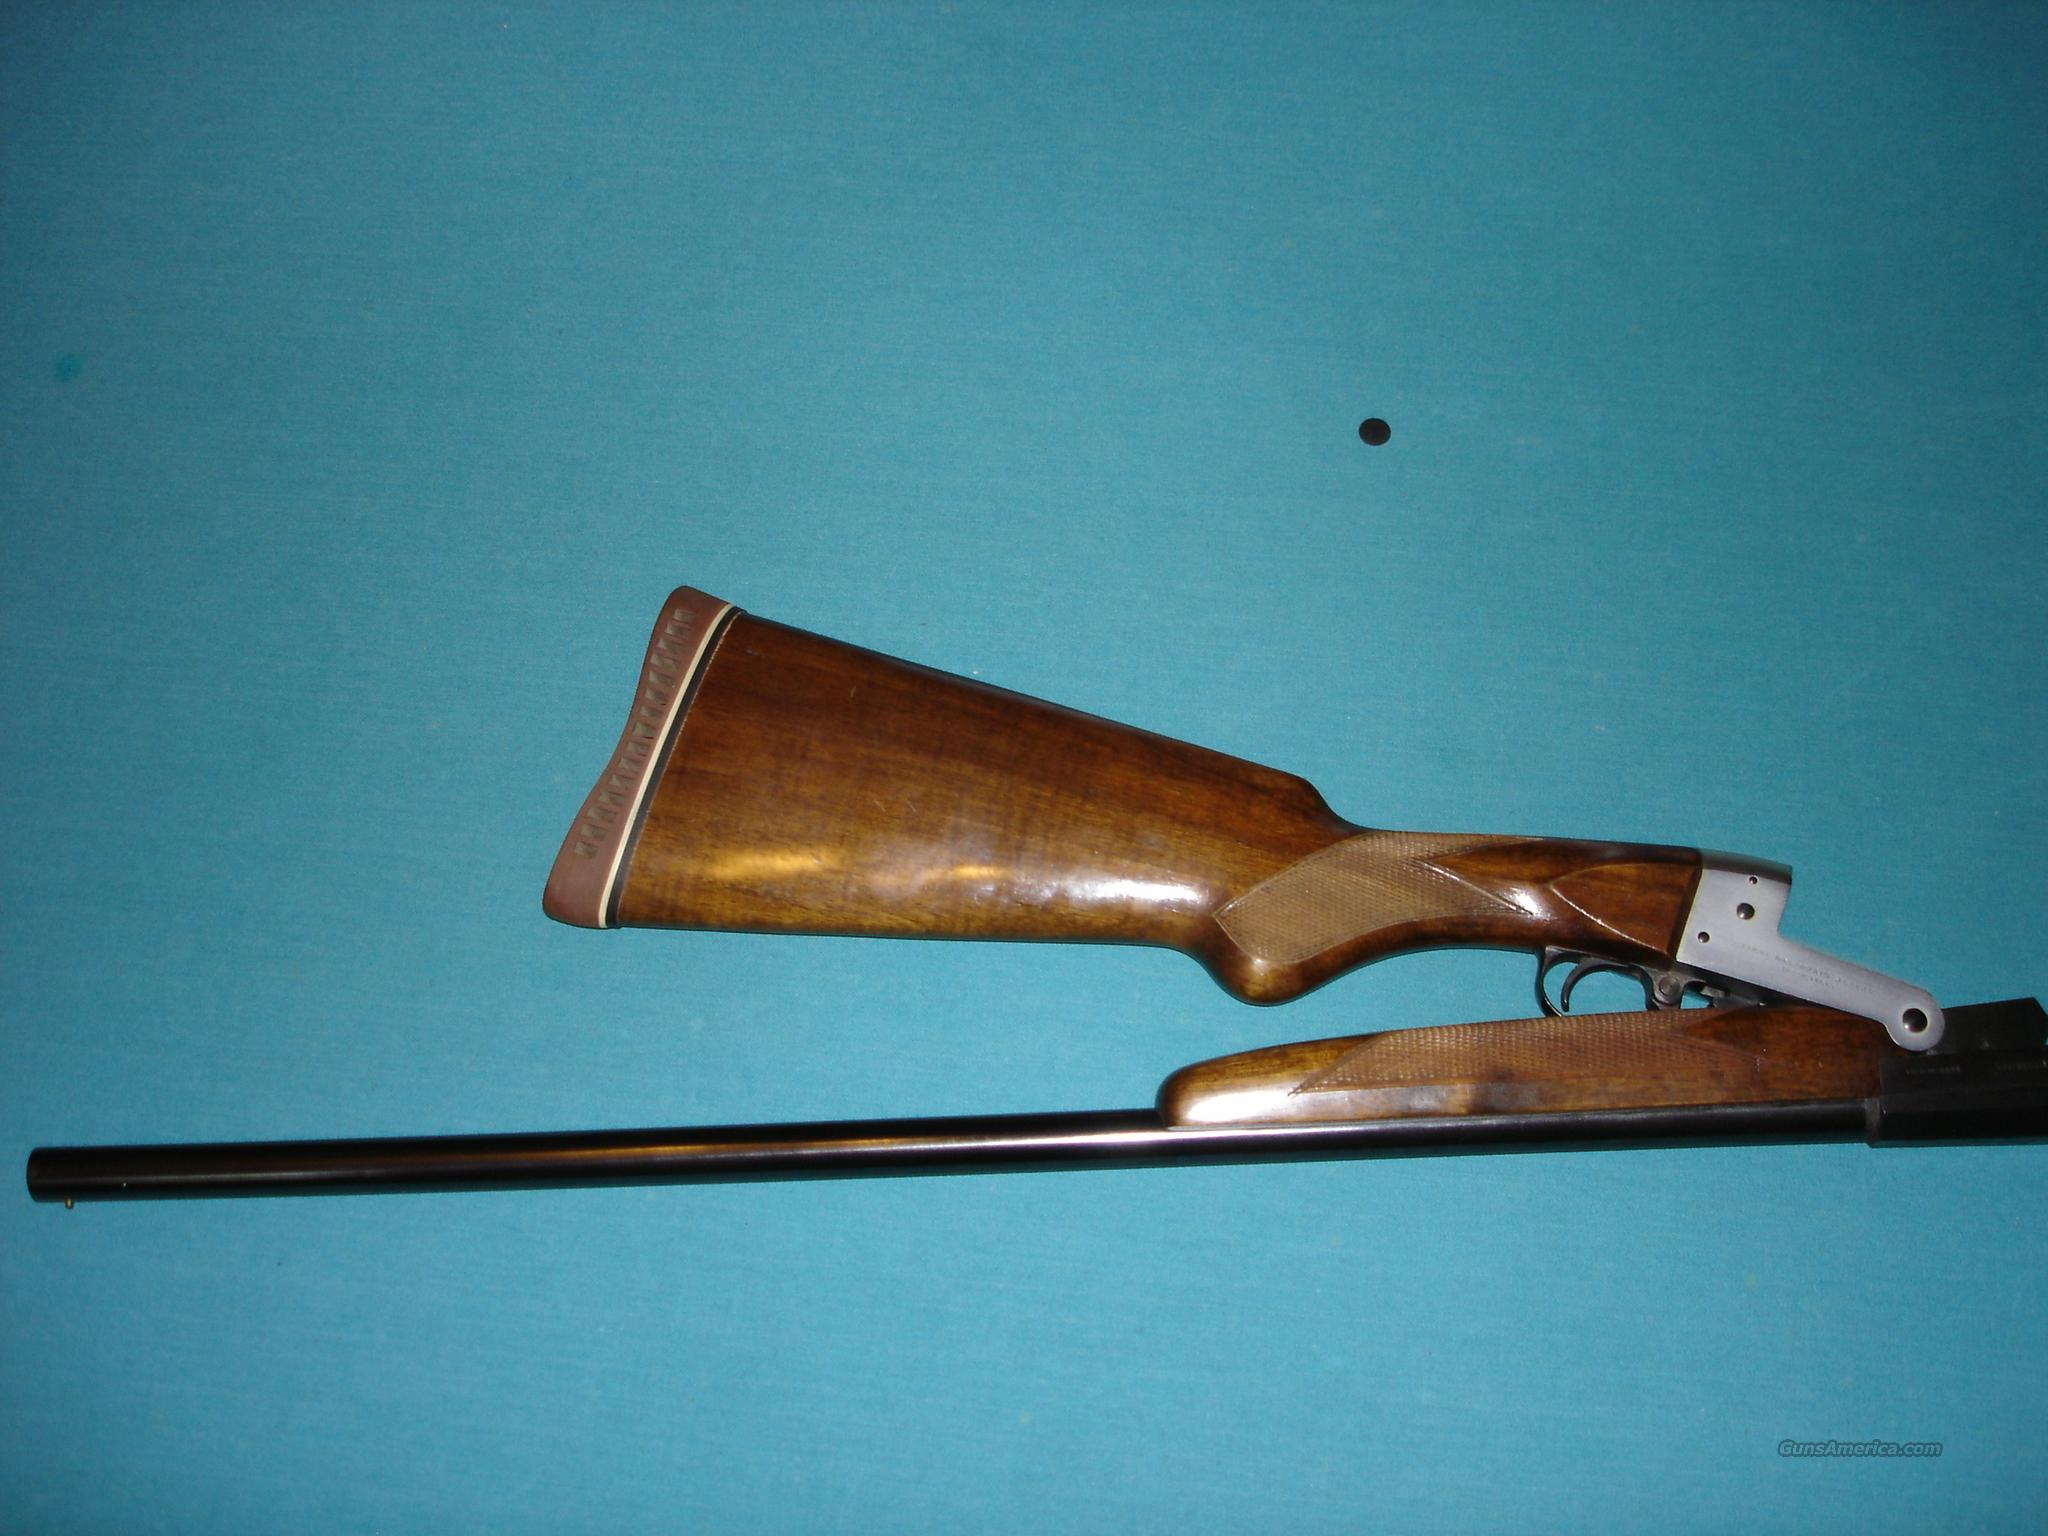 Beretta Companion Folding 16 ga Shotgun  Guns > Shotguns > Beretta Shotguns > Single Barrel